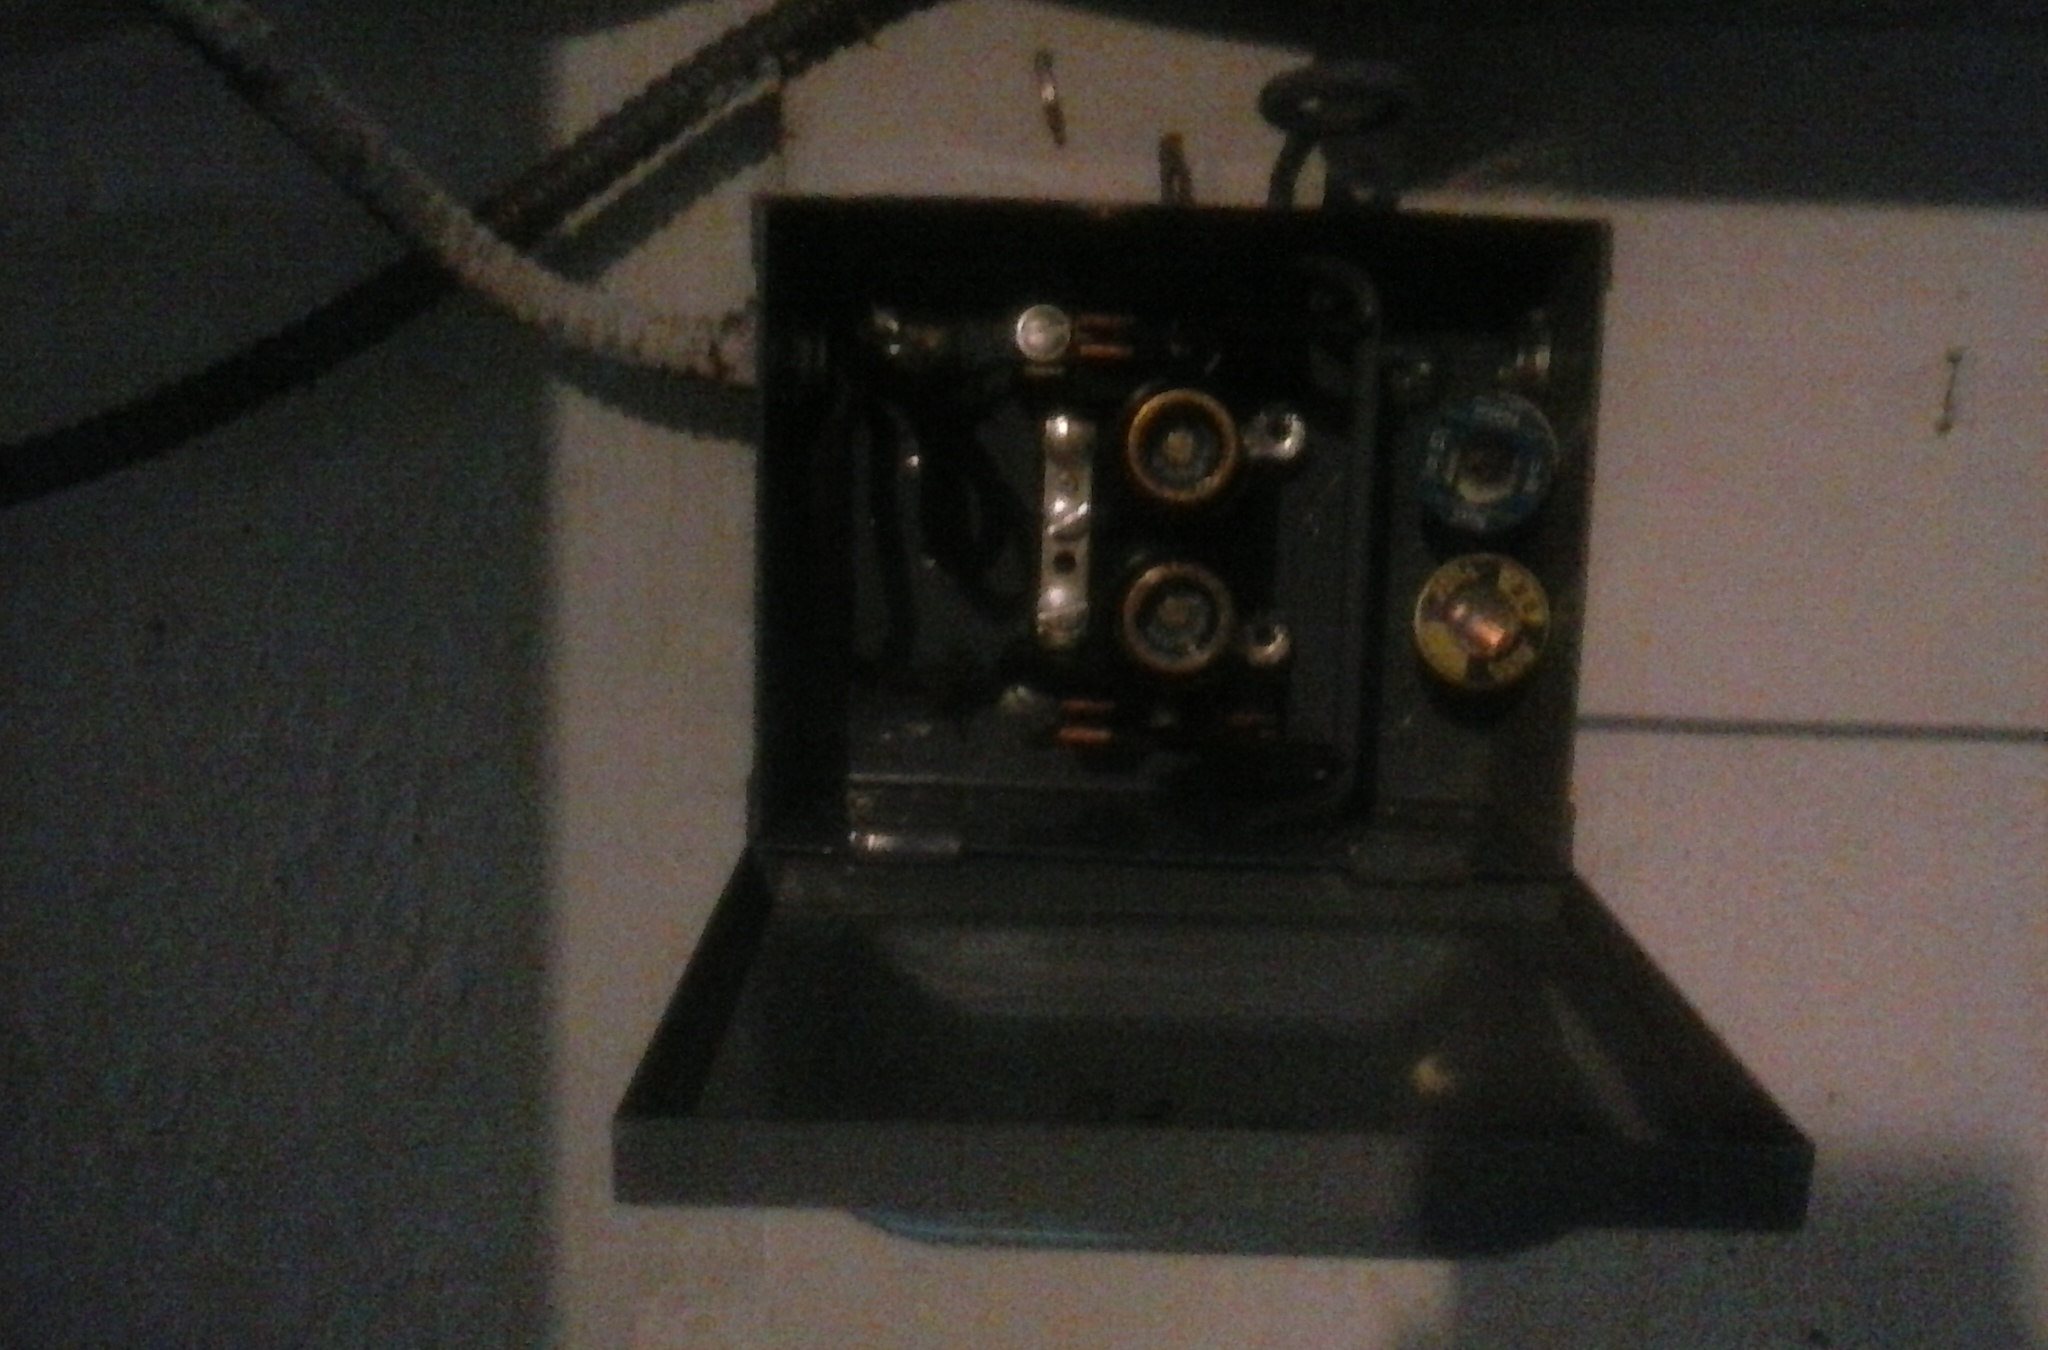 Water Heater Fuse Box Wiring Diagram Libraries Strange In House Phones Install Lightsstrange